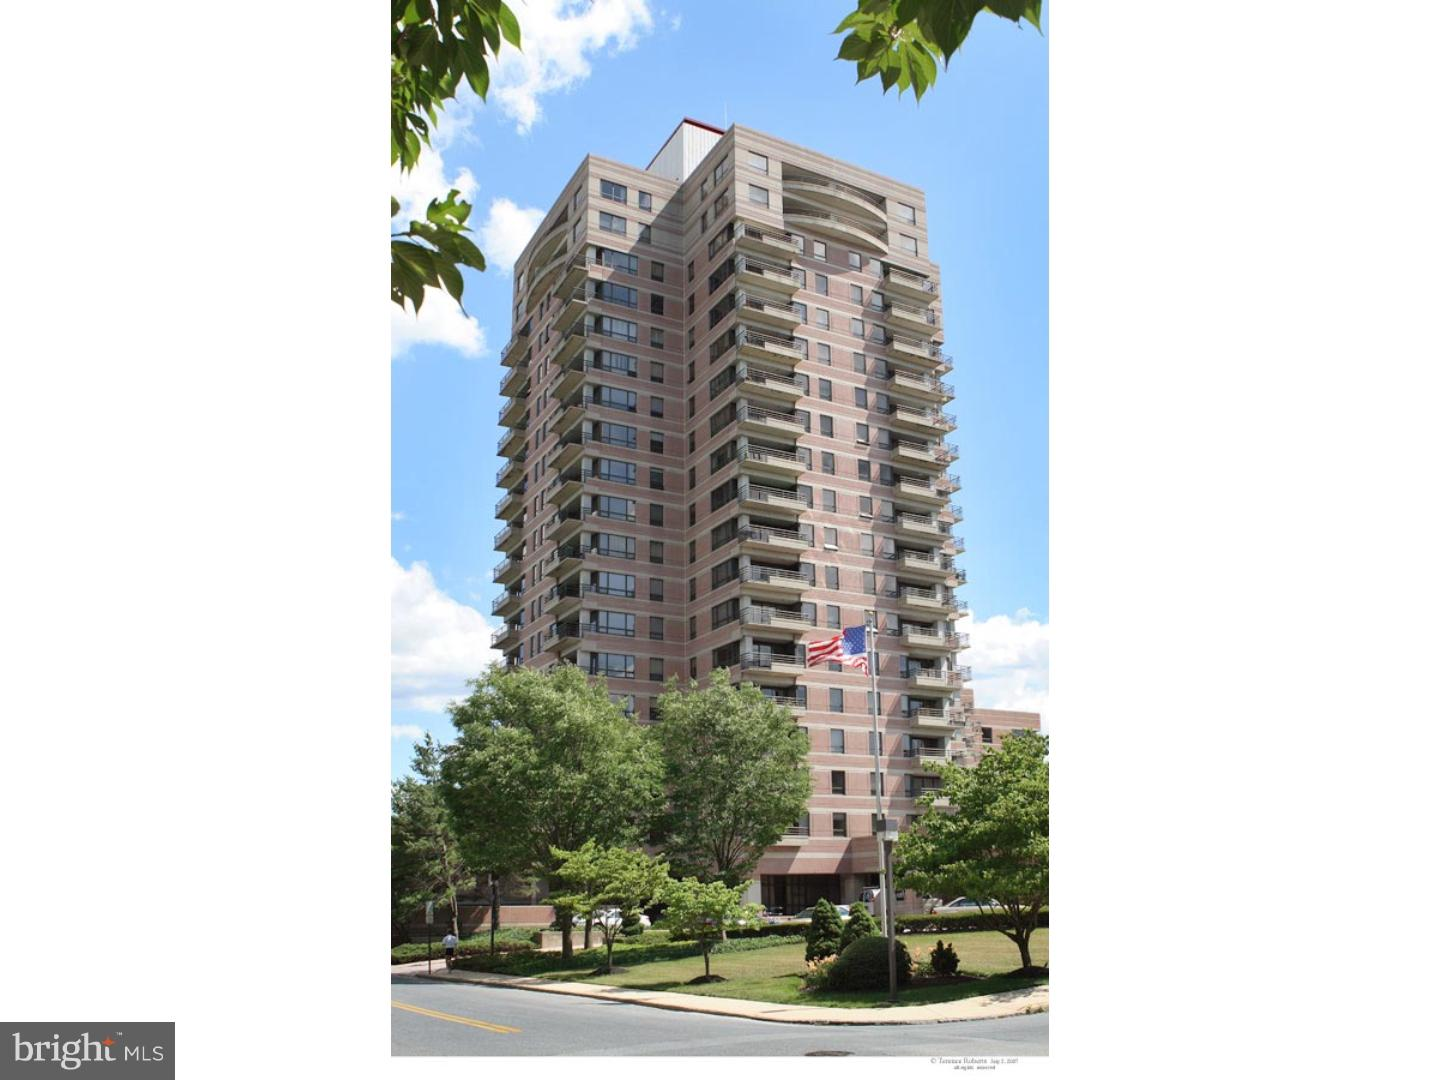 Park Plaza Condominiums offers a beautifully renovated one bedroom residence with an open kitchen to